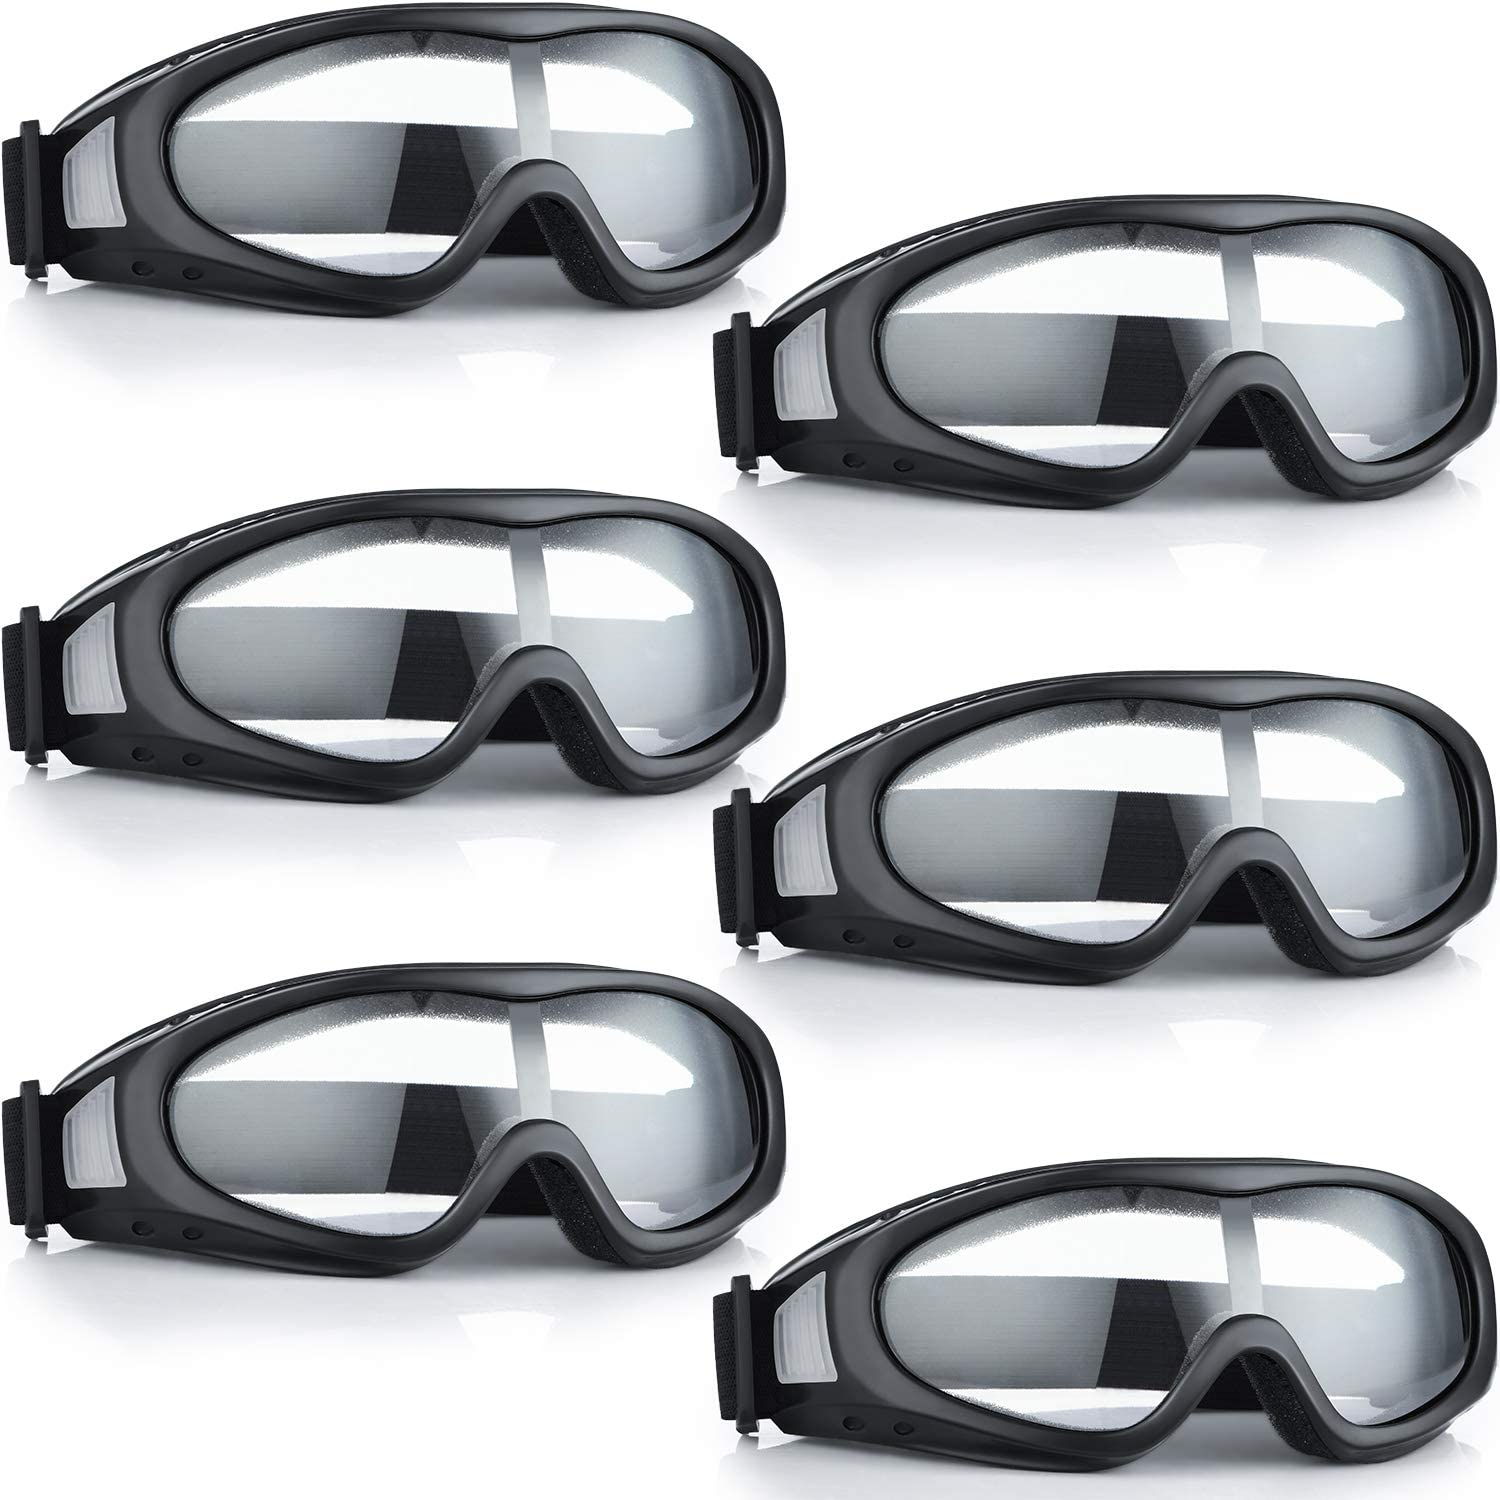 6 Pieces Motorcycle Goggles Safety Goggles Off Road Racing Goggle Riding Glasses Compatible with ATV Dirt Bike for Men Women Kids Youth Adult